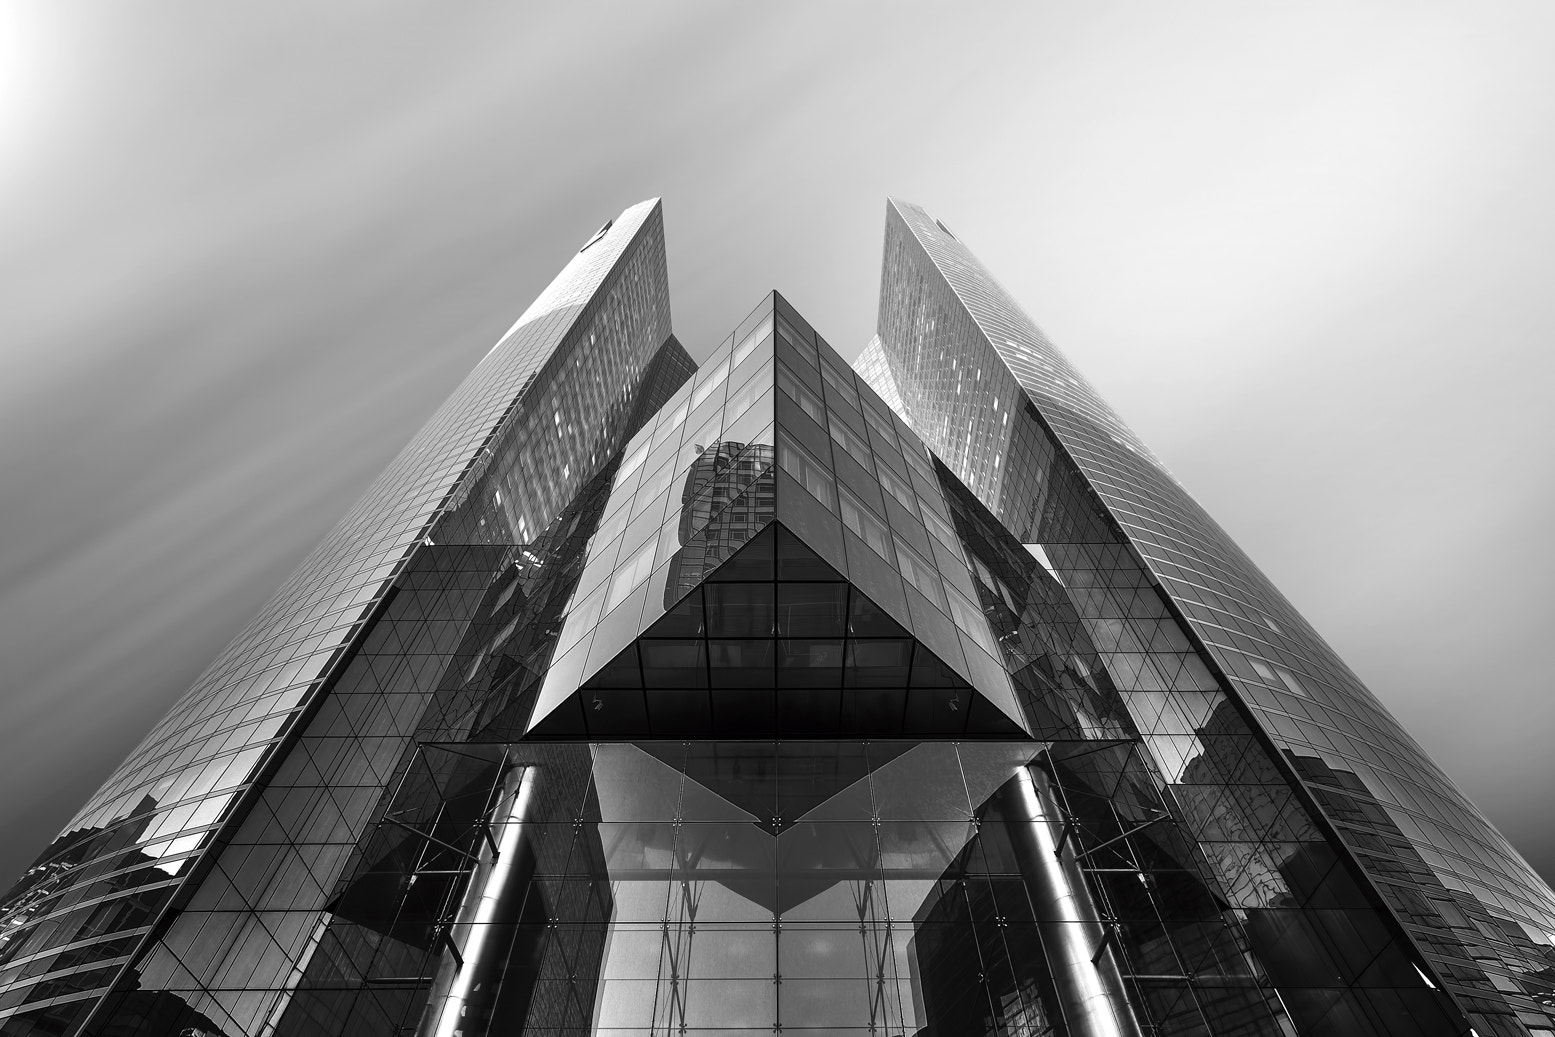 Photograph Sauron 2013 by Lucas Portee on 500px